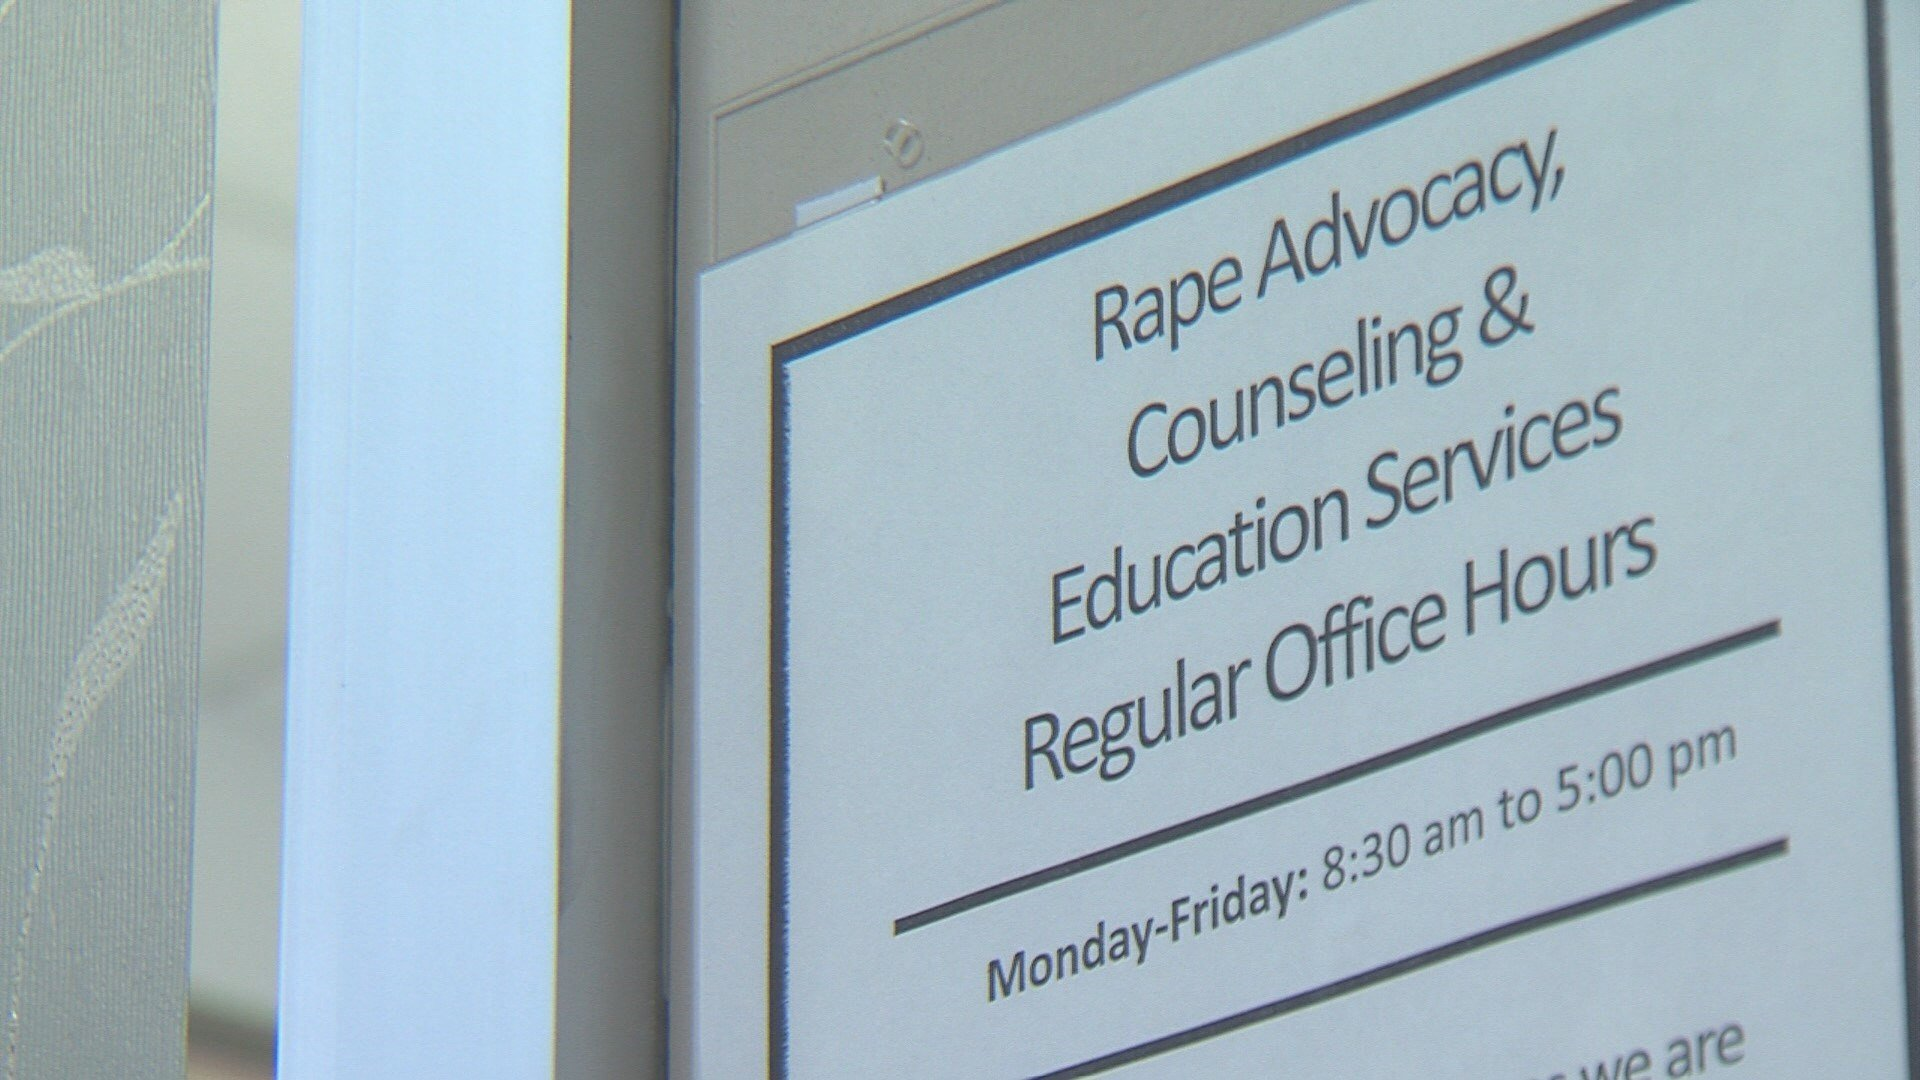 #MeToo opens conversation about sexual assault across Lowcountry